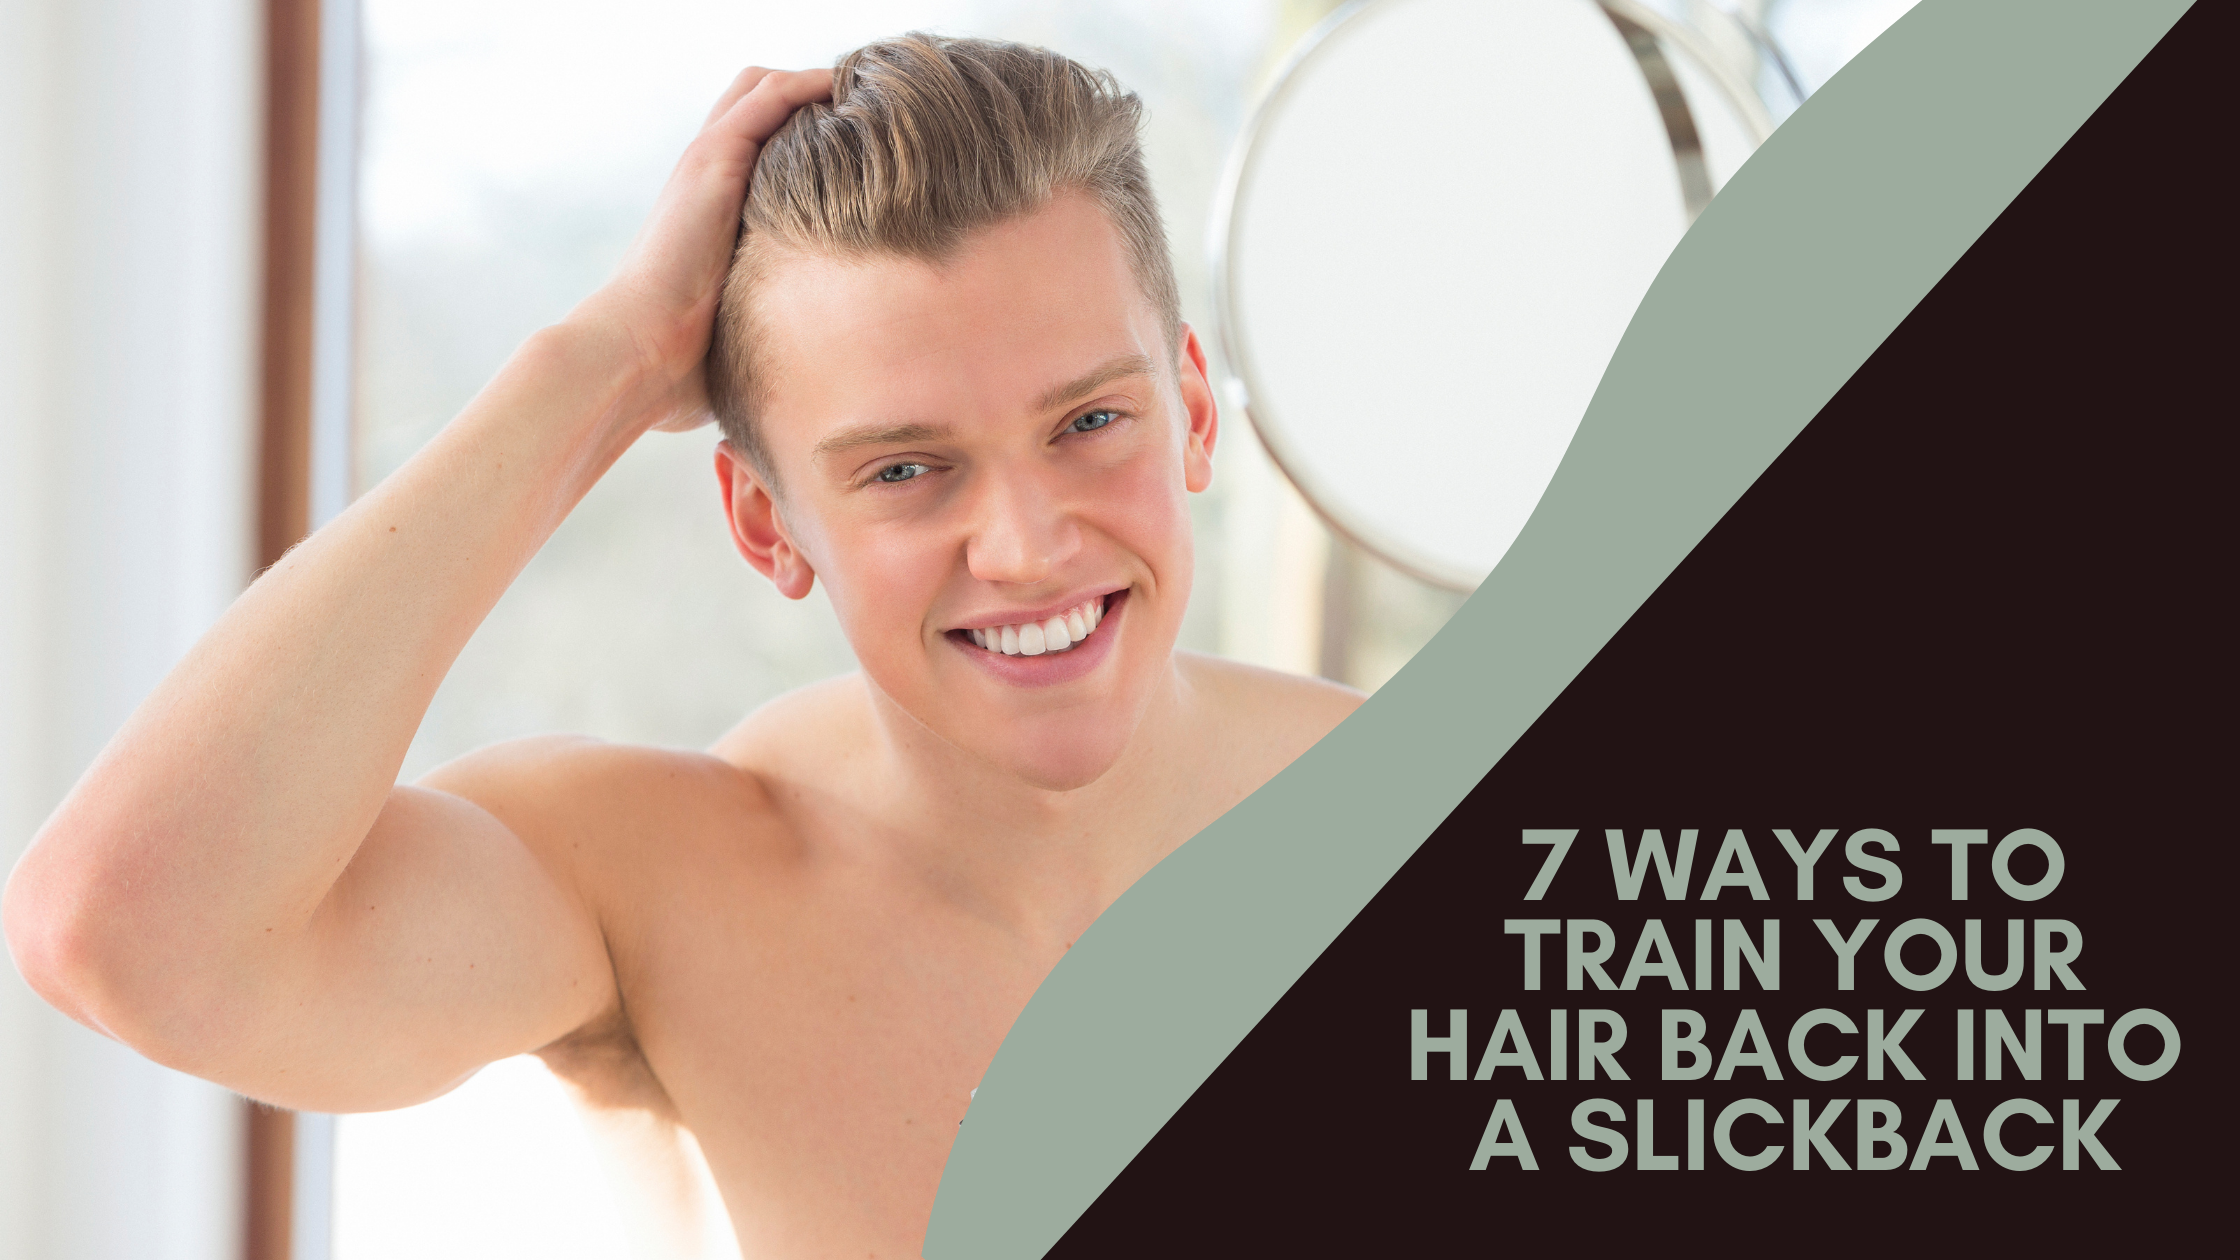 7 Ways To Train Your Hair To Go Back (Slick Back)